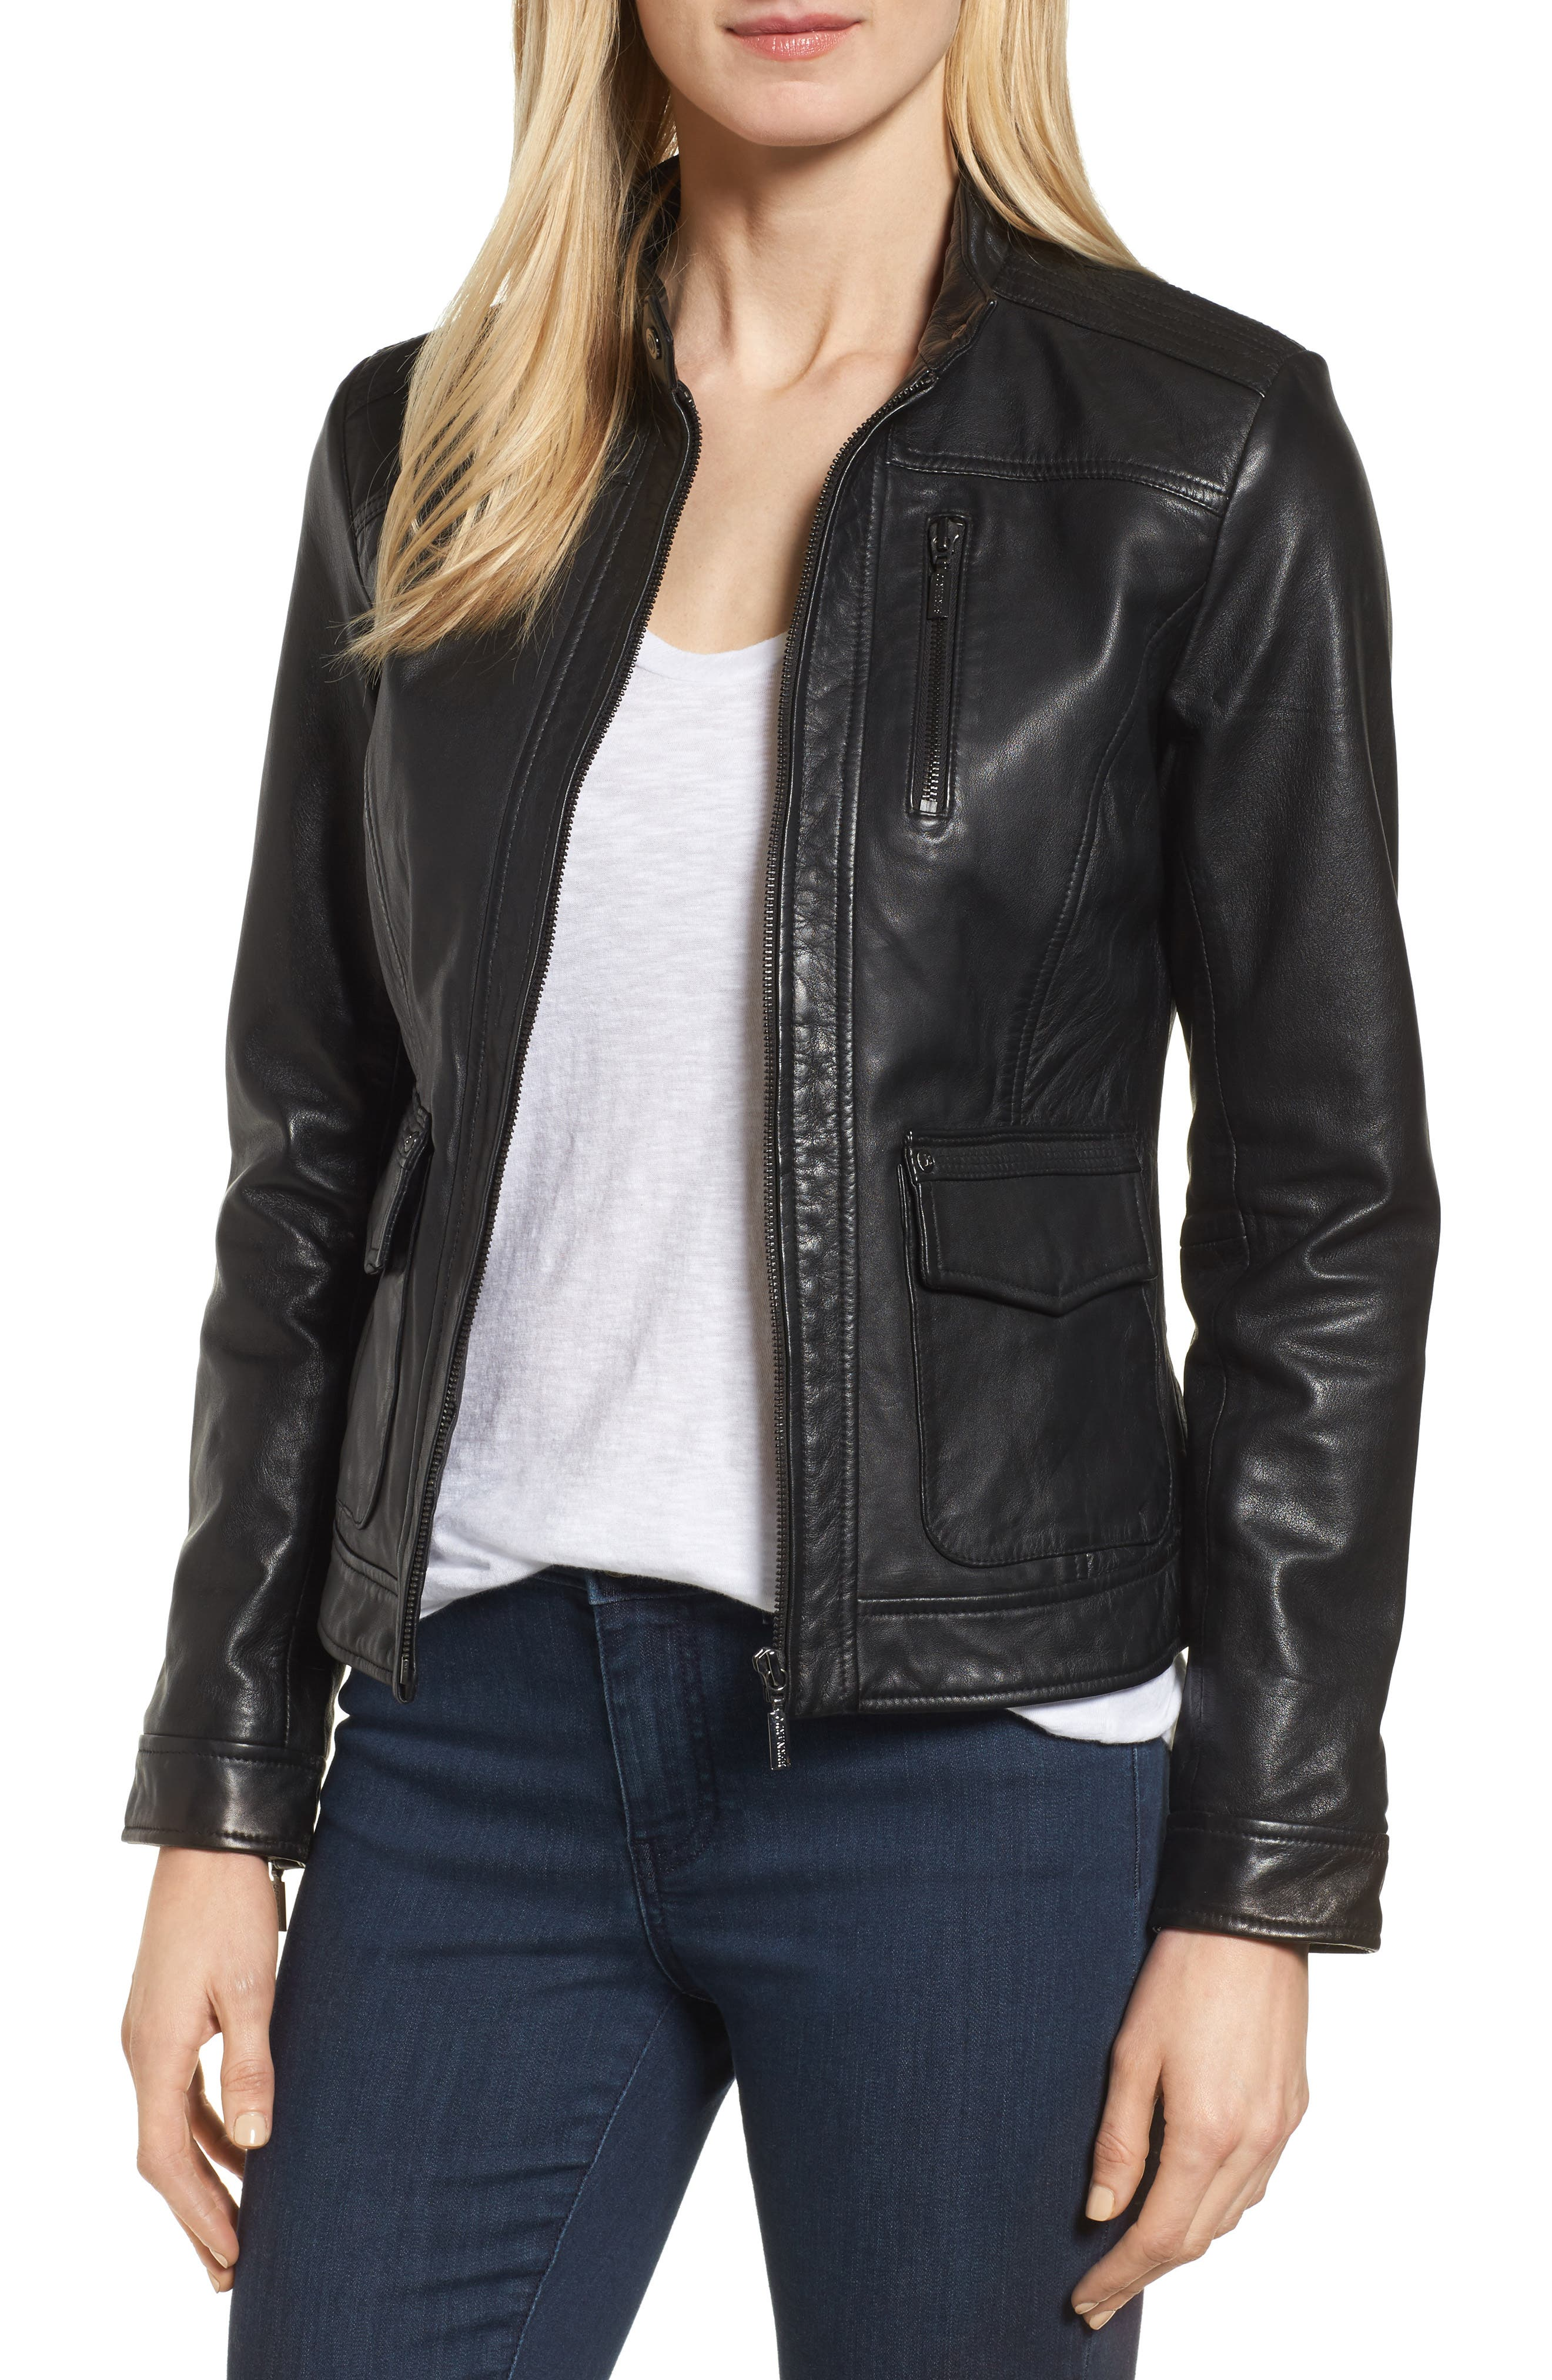 Kerwin Pocket Detail Leather Jacket,                             Main thumbnail 1, color,                             001